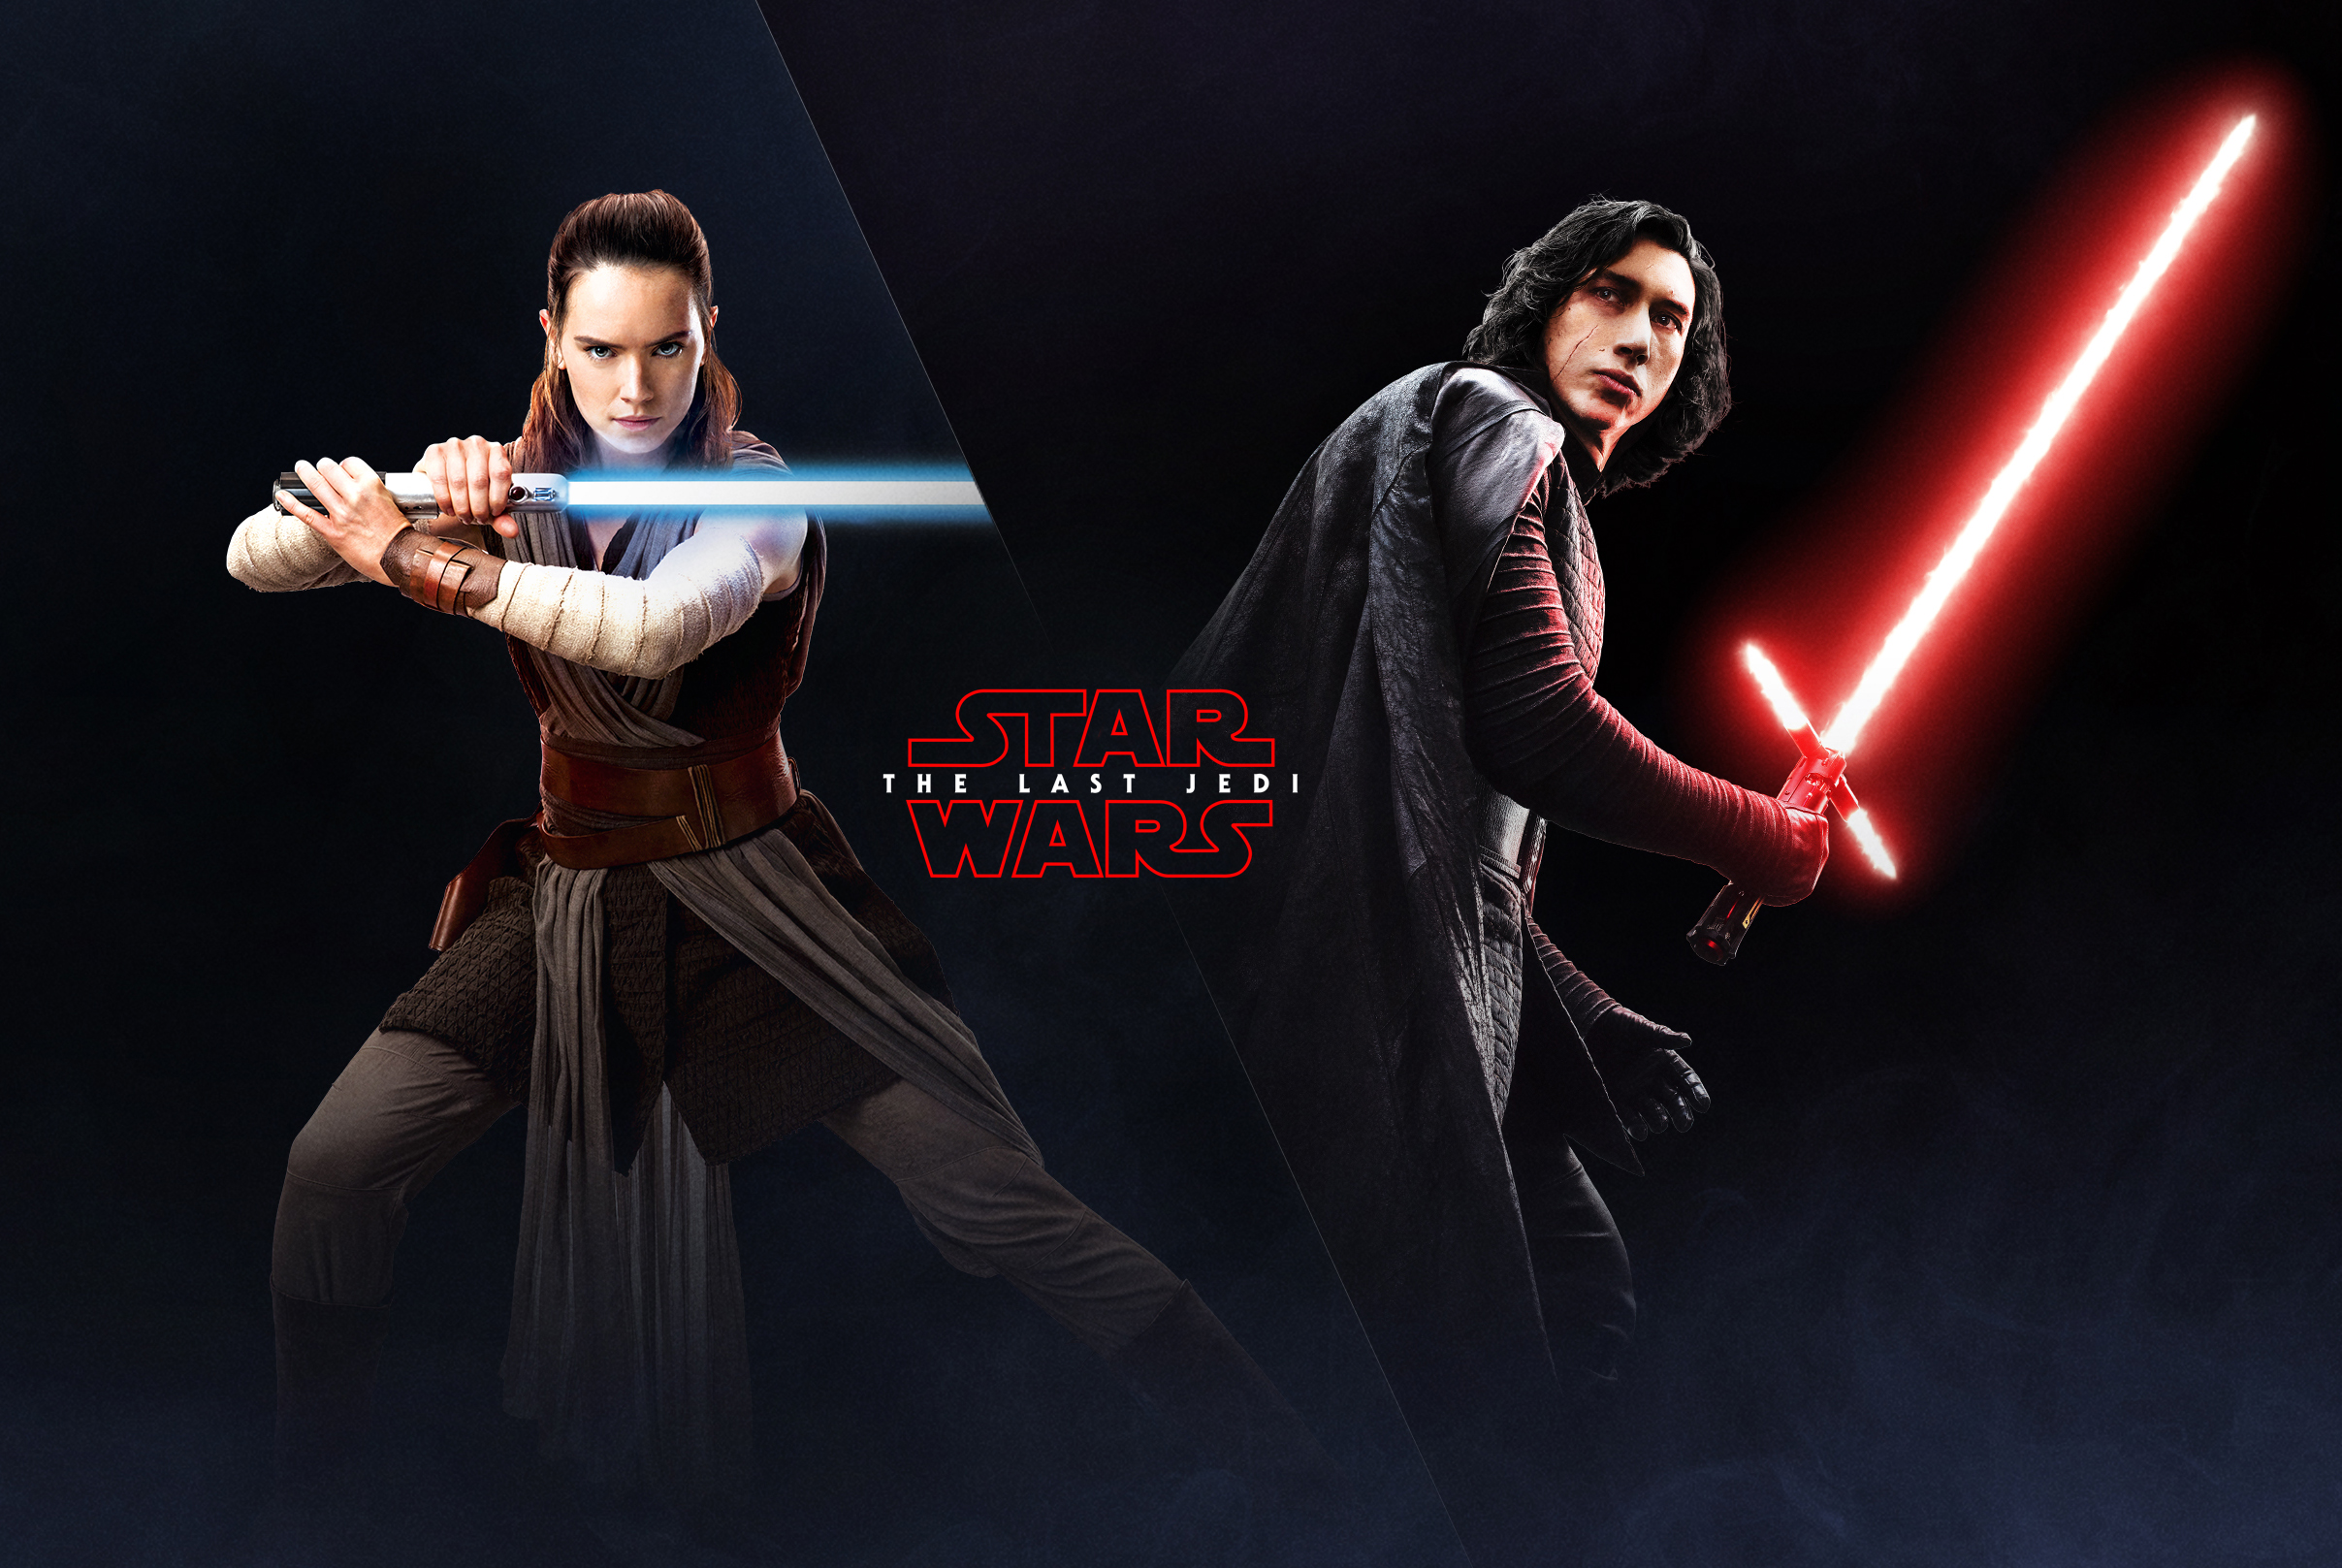 The Last Jedi Wallpaper Rey And Kylo Ren Ea Battlefront